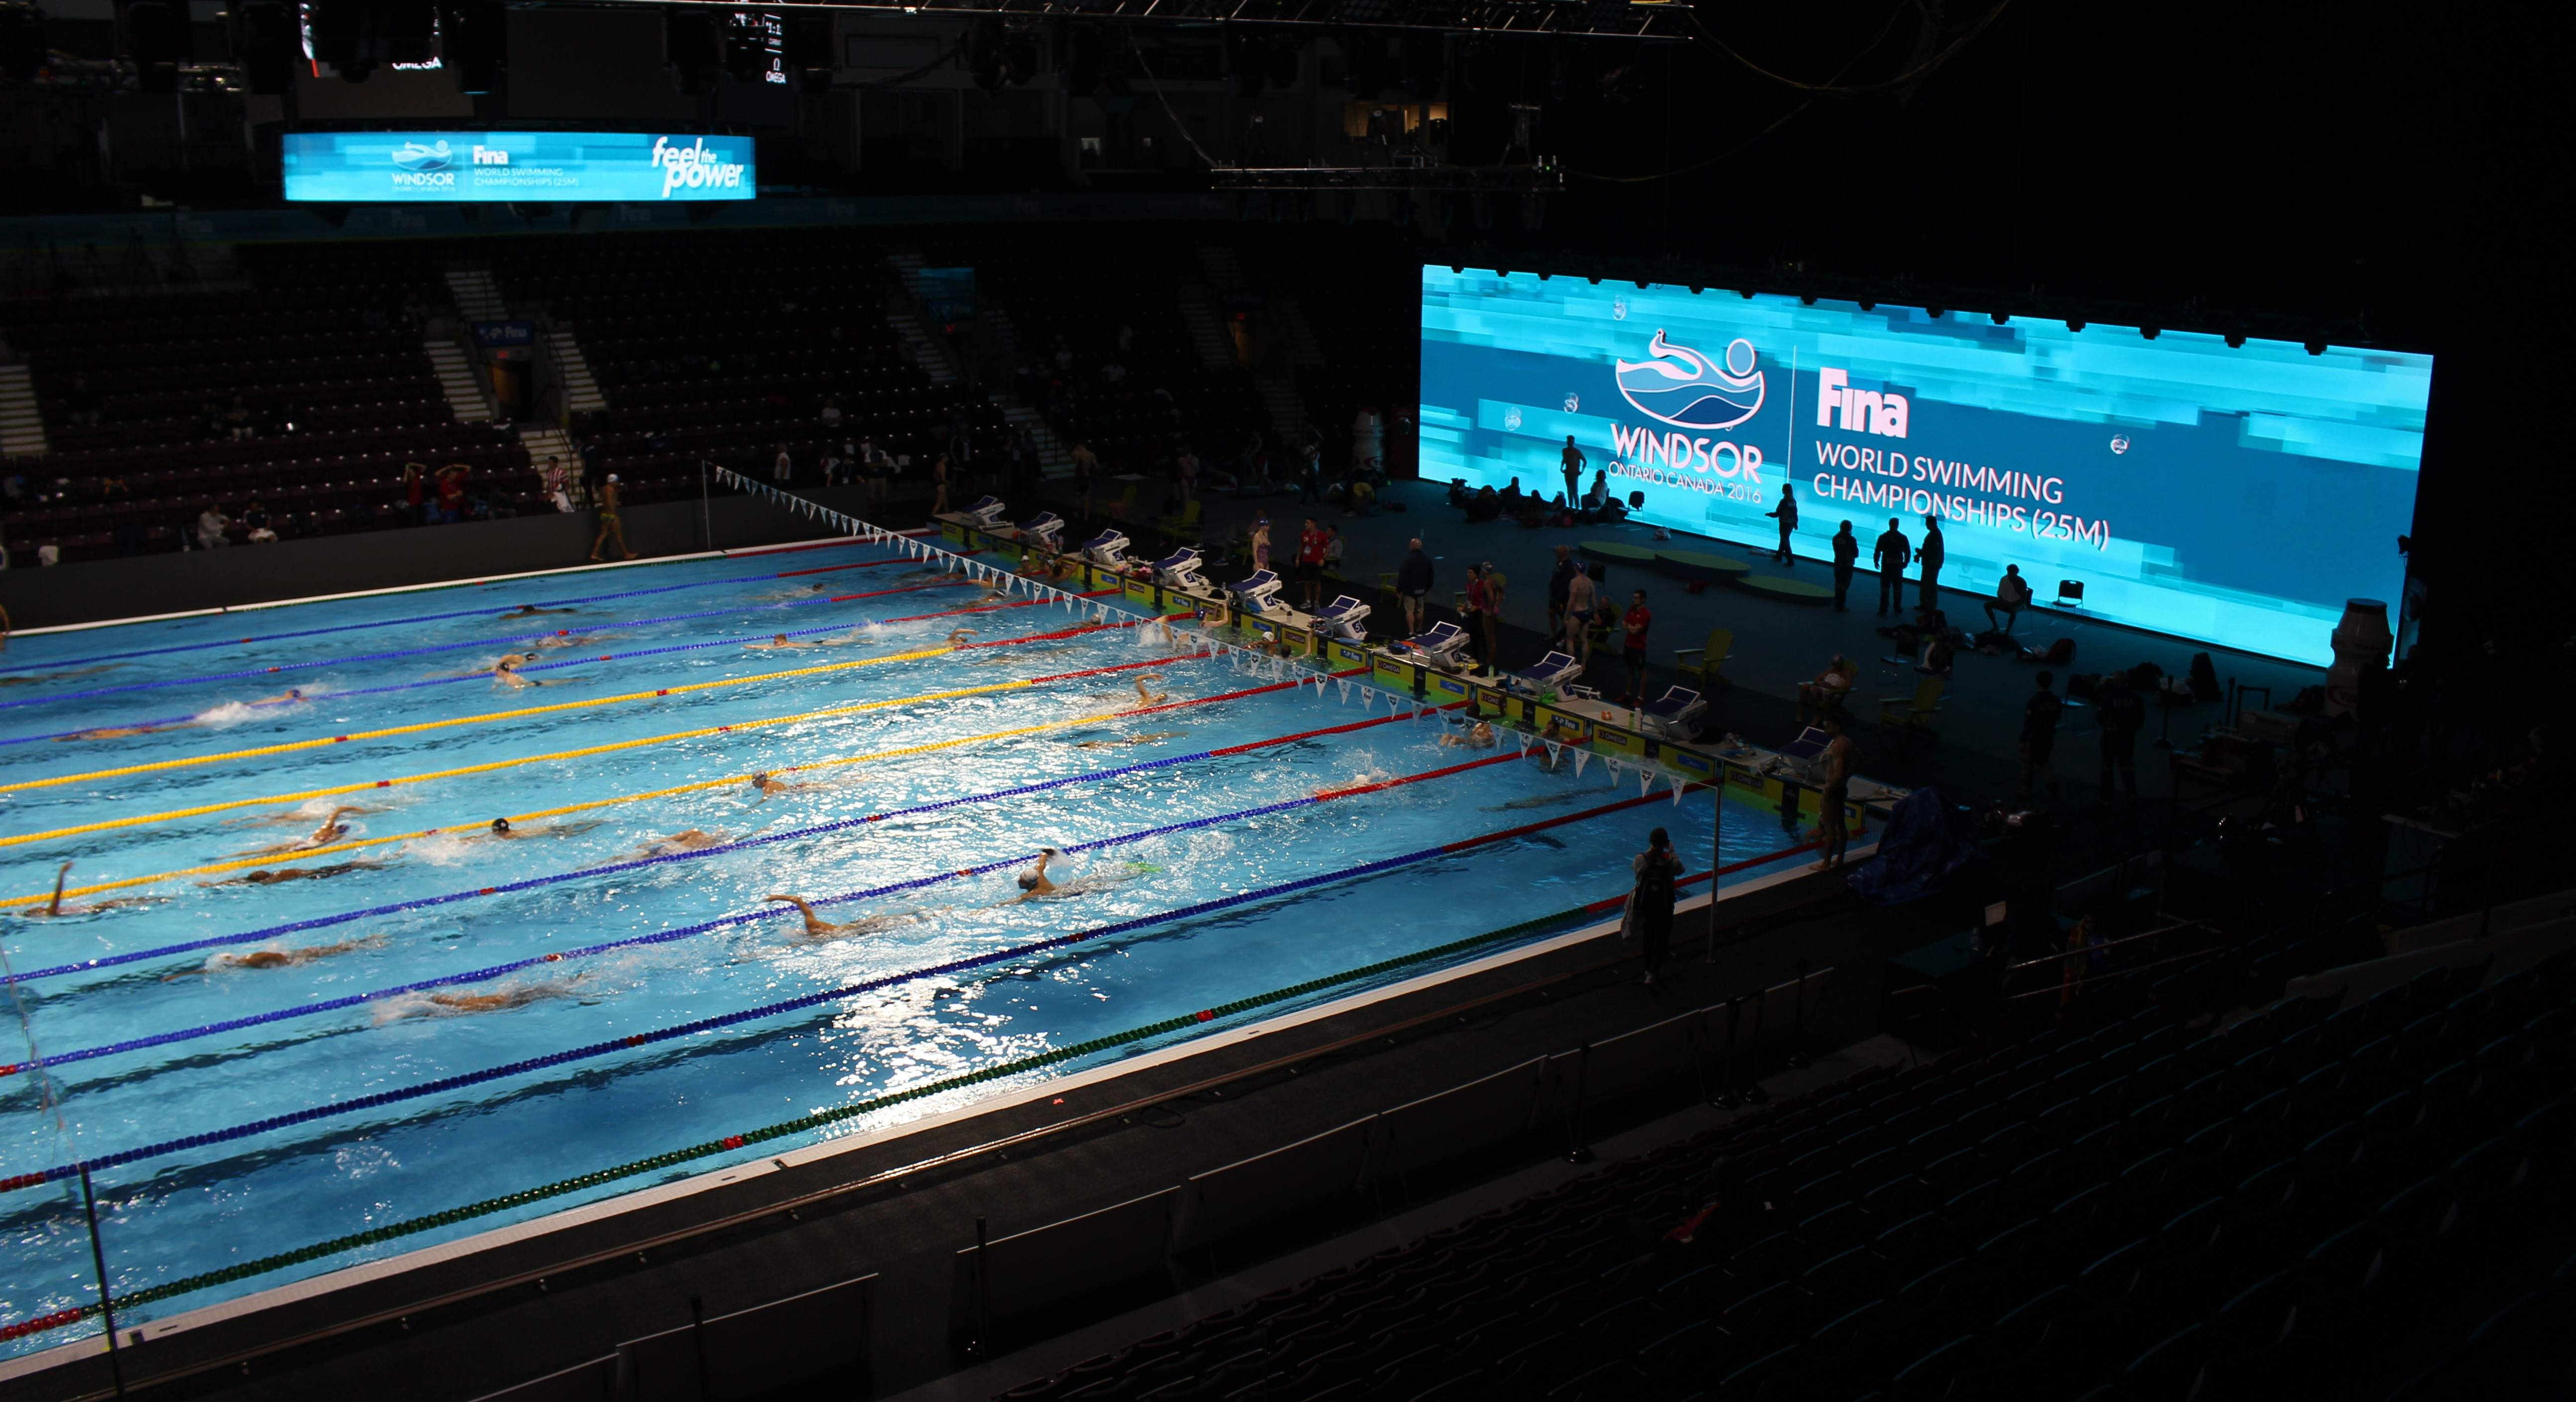 Fina Swimming Competitions Underway